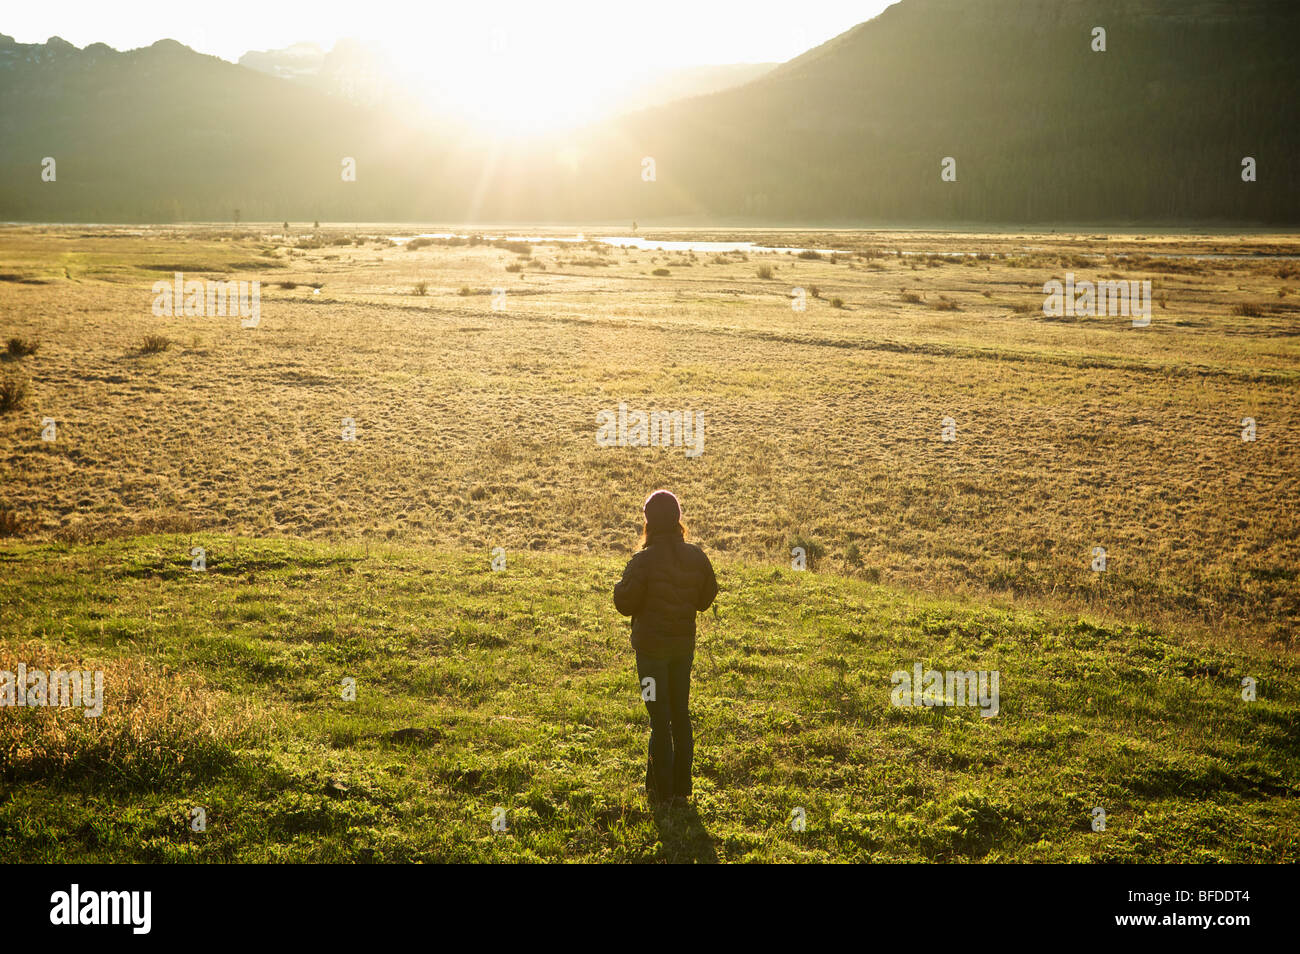 A woman drinks coffee and watches the sunrise from a field in Yellowstone National Park. - Stock Image